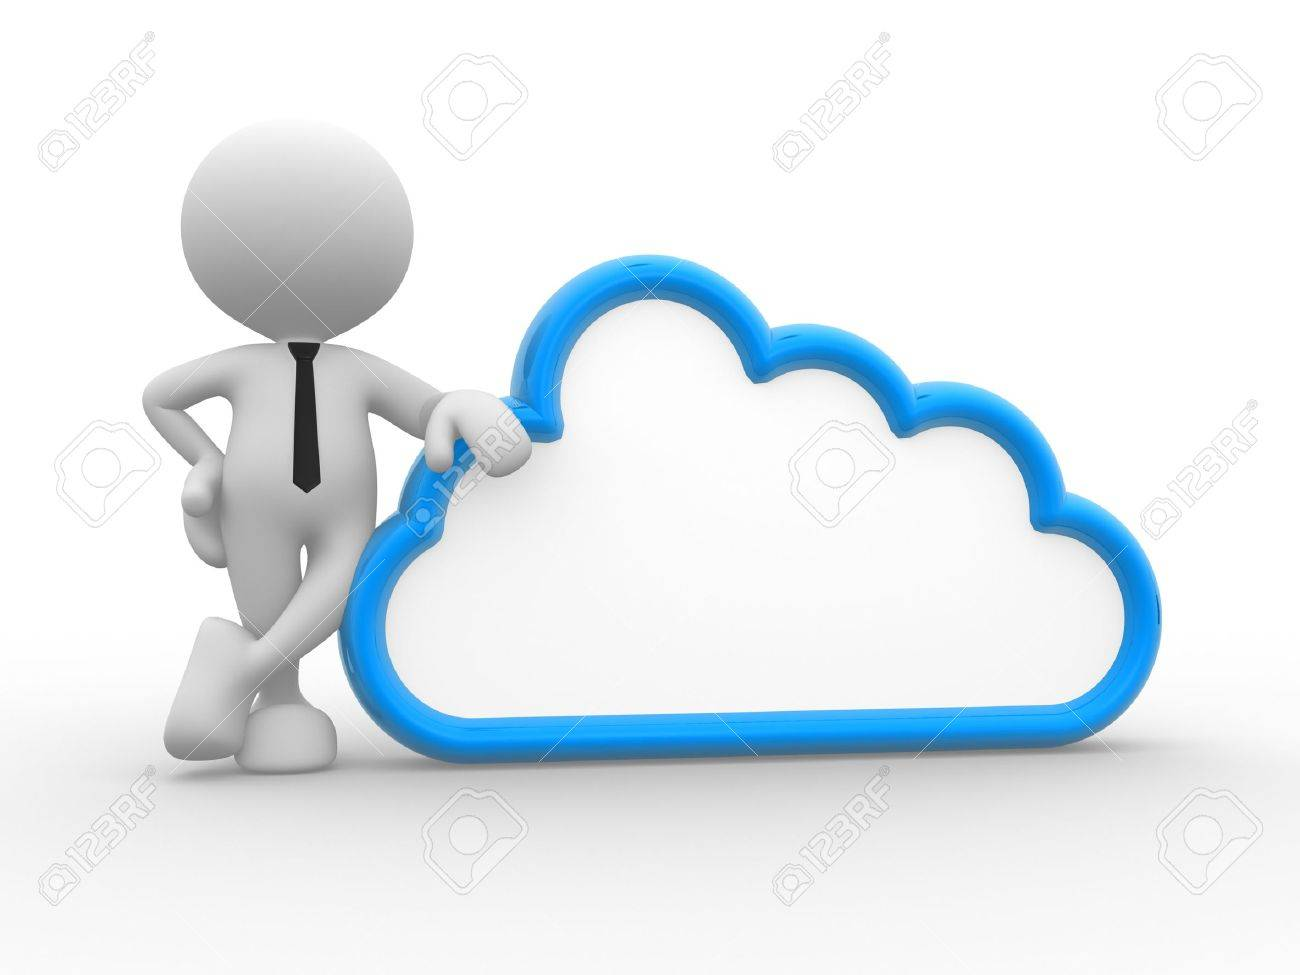 3d people - man, person standing near to a cloud. Stock Photo - 15519451